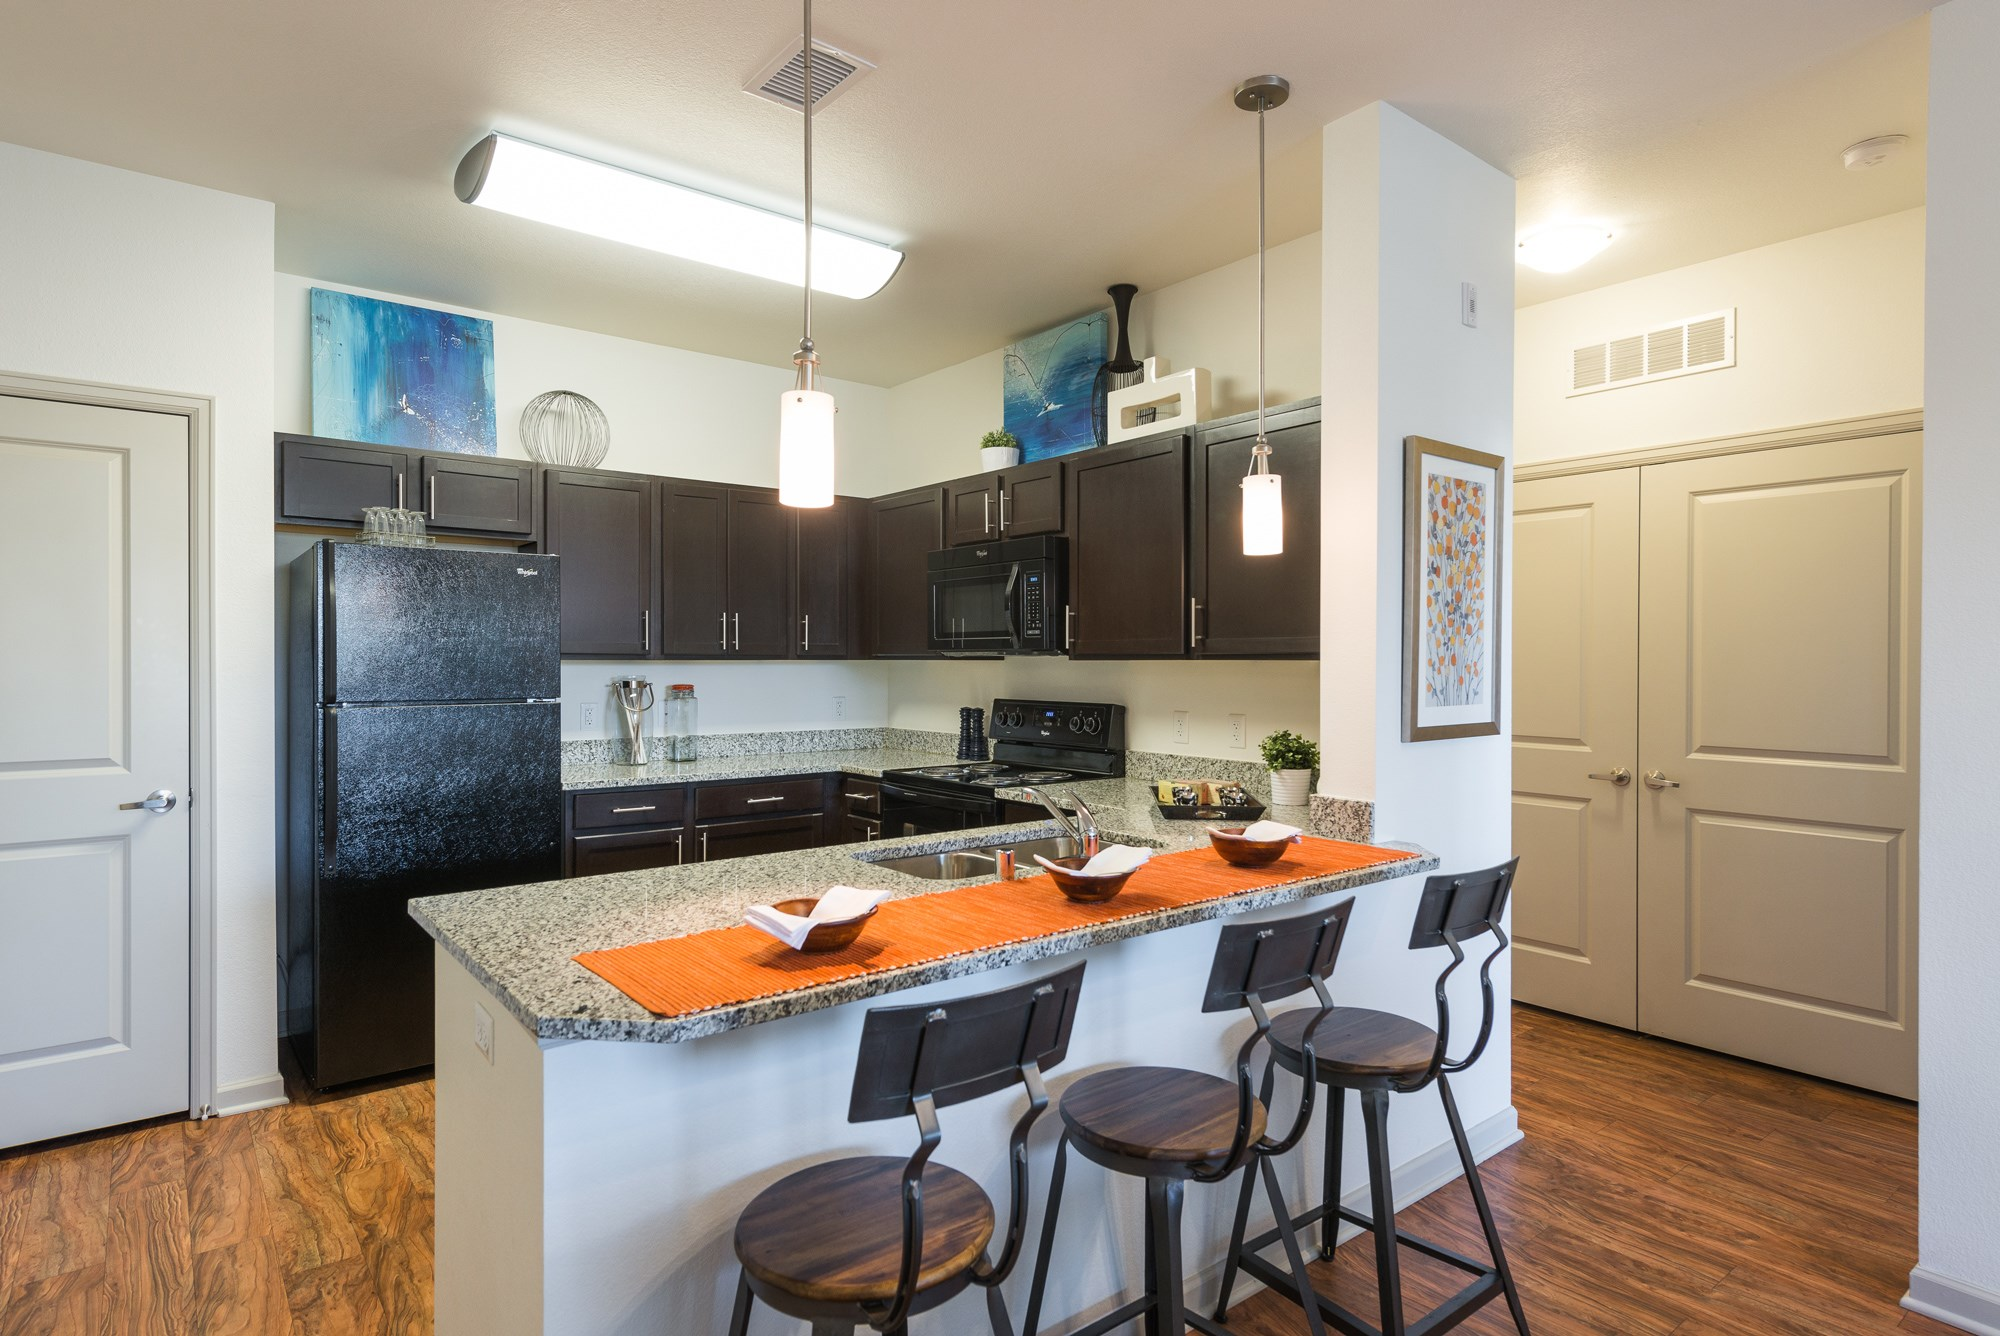 Kitchen at Arterra Place Apartments in Aurora, CO